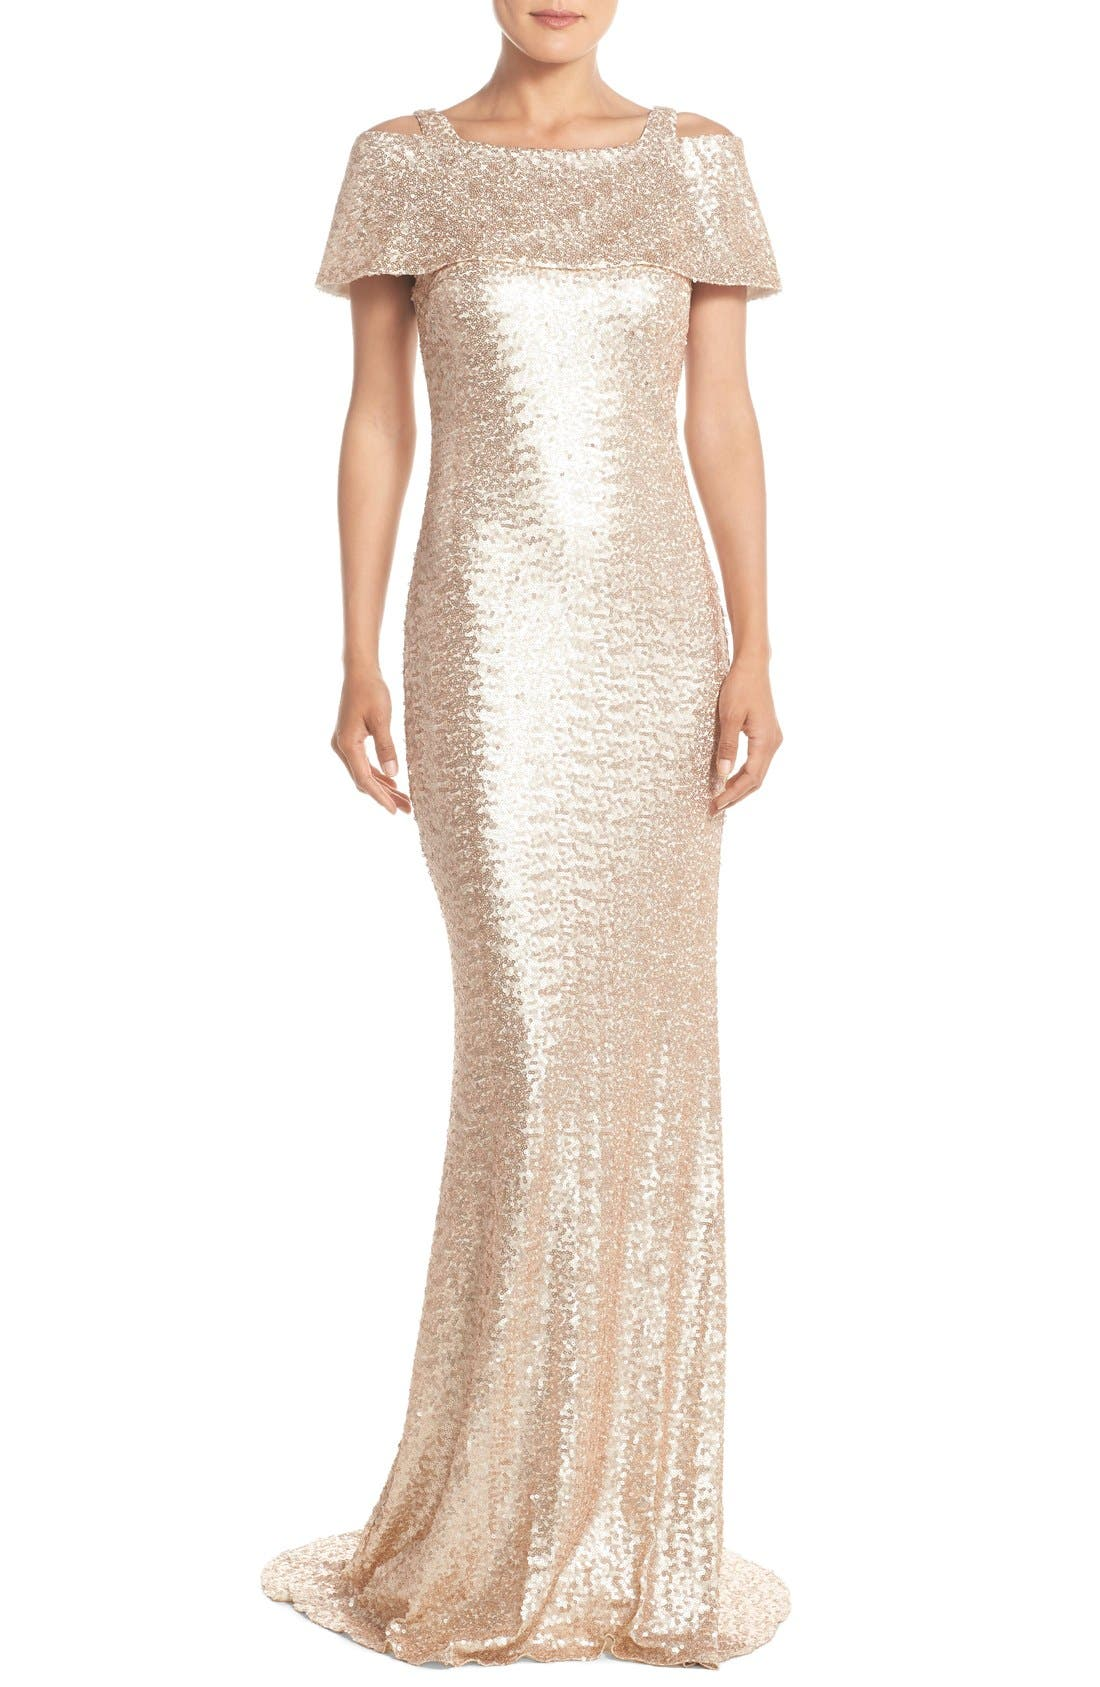 Alternate Image 1 Selected - Badgley Mischka Cold Shoulder Sequin Body-Con Gown